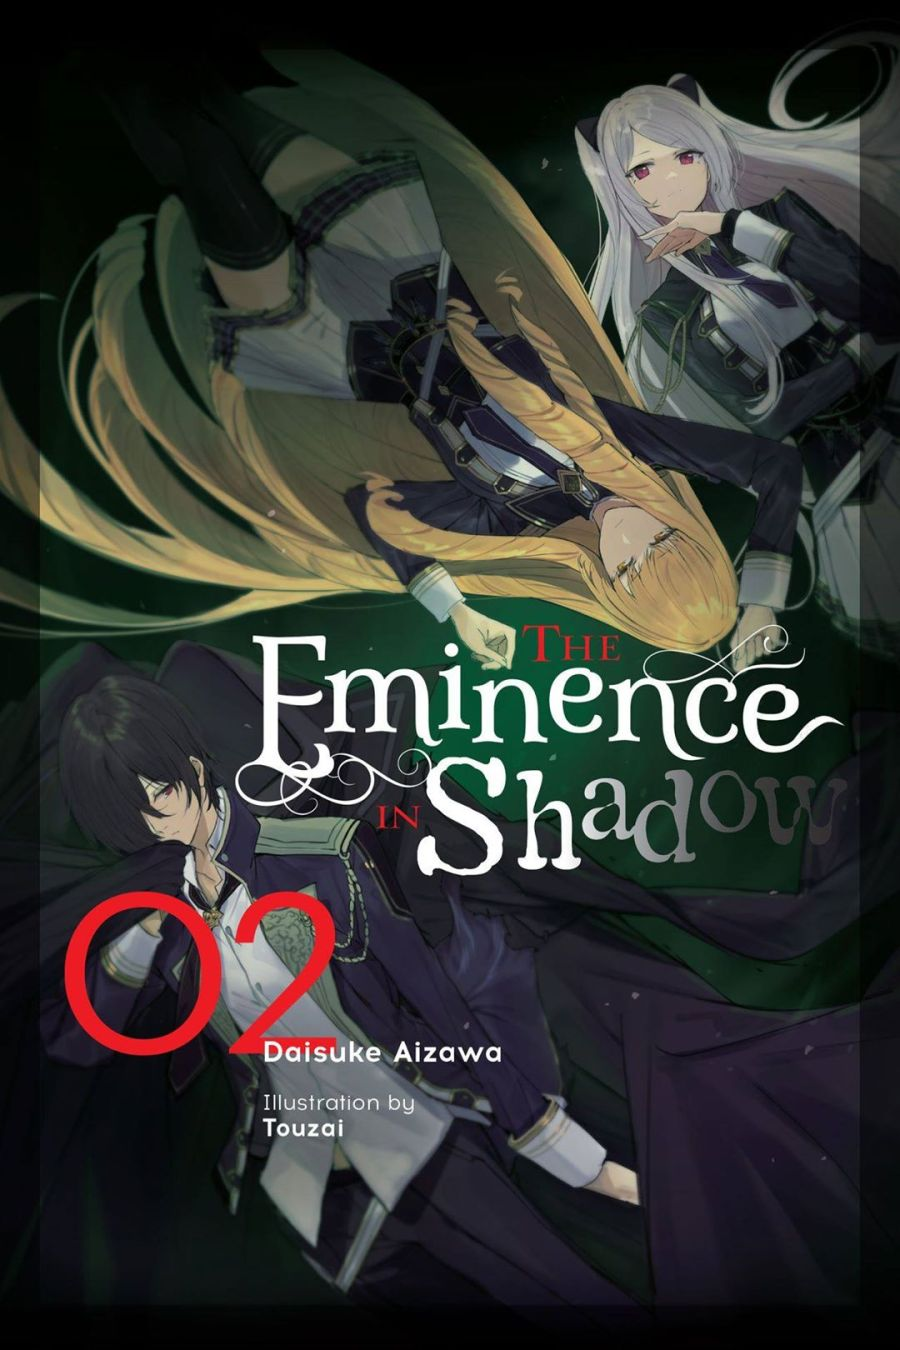 The Eminence in Shadow Volume 2